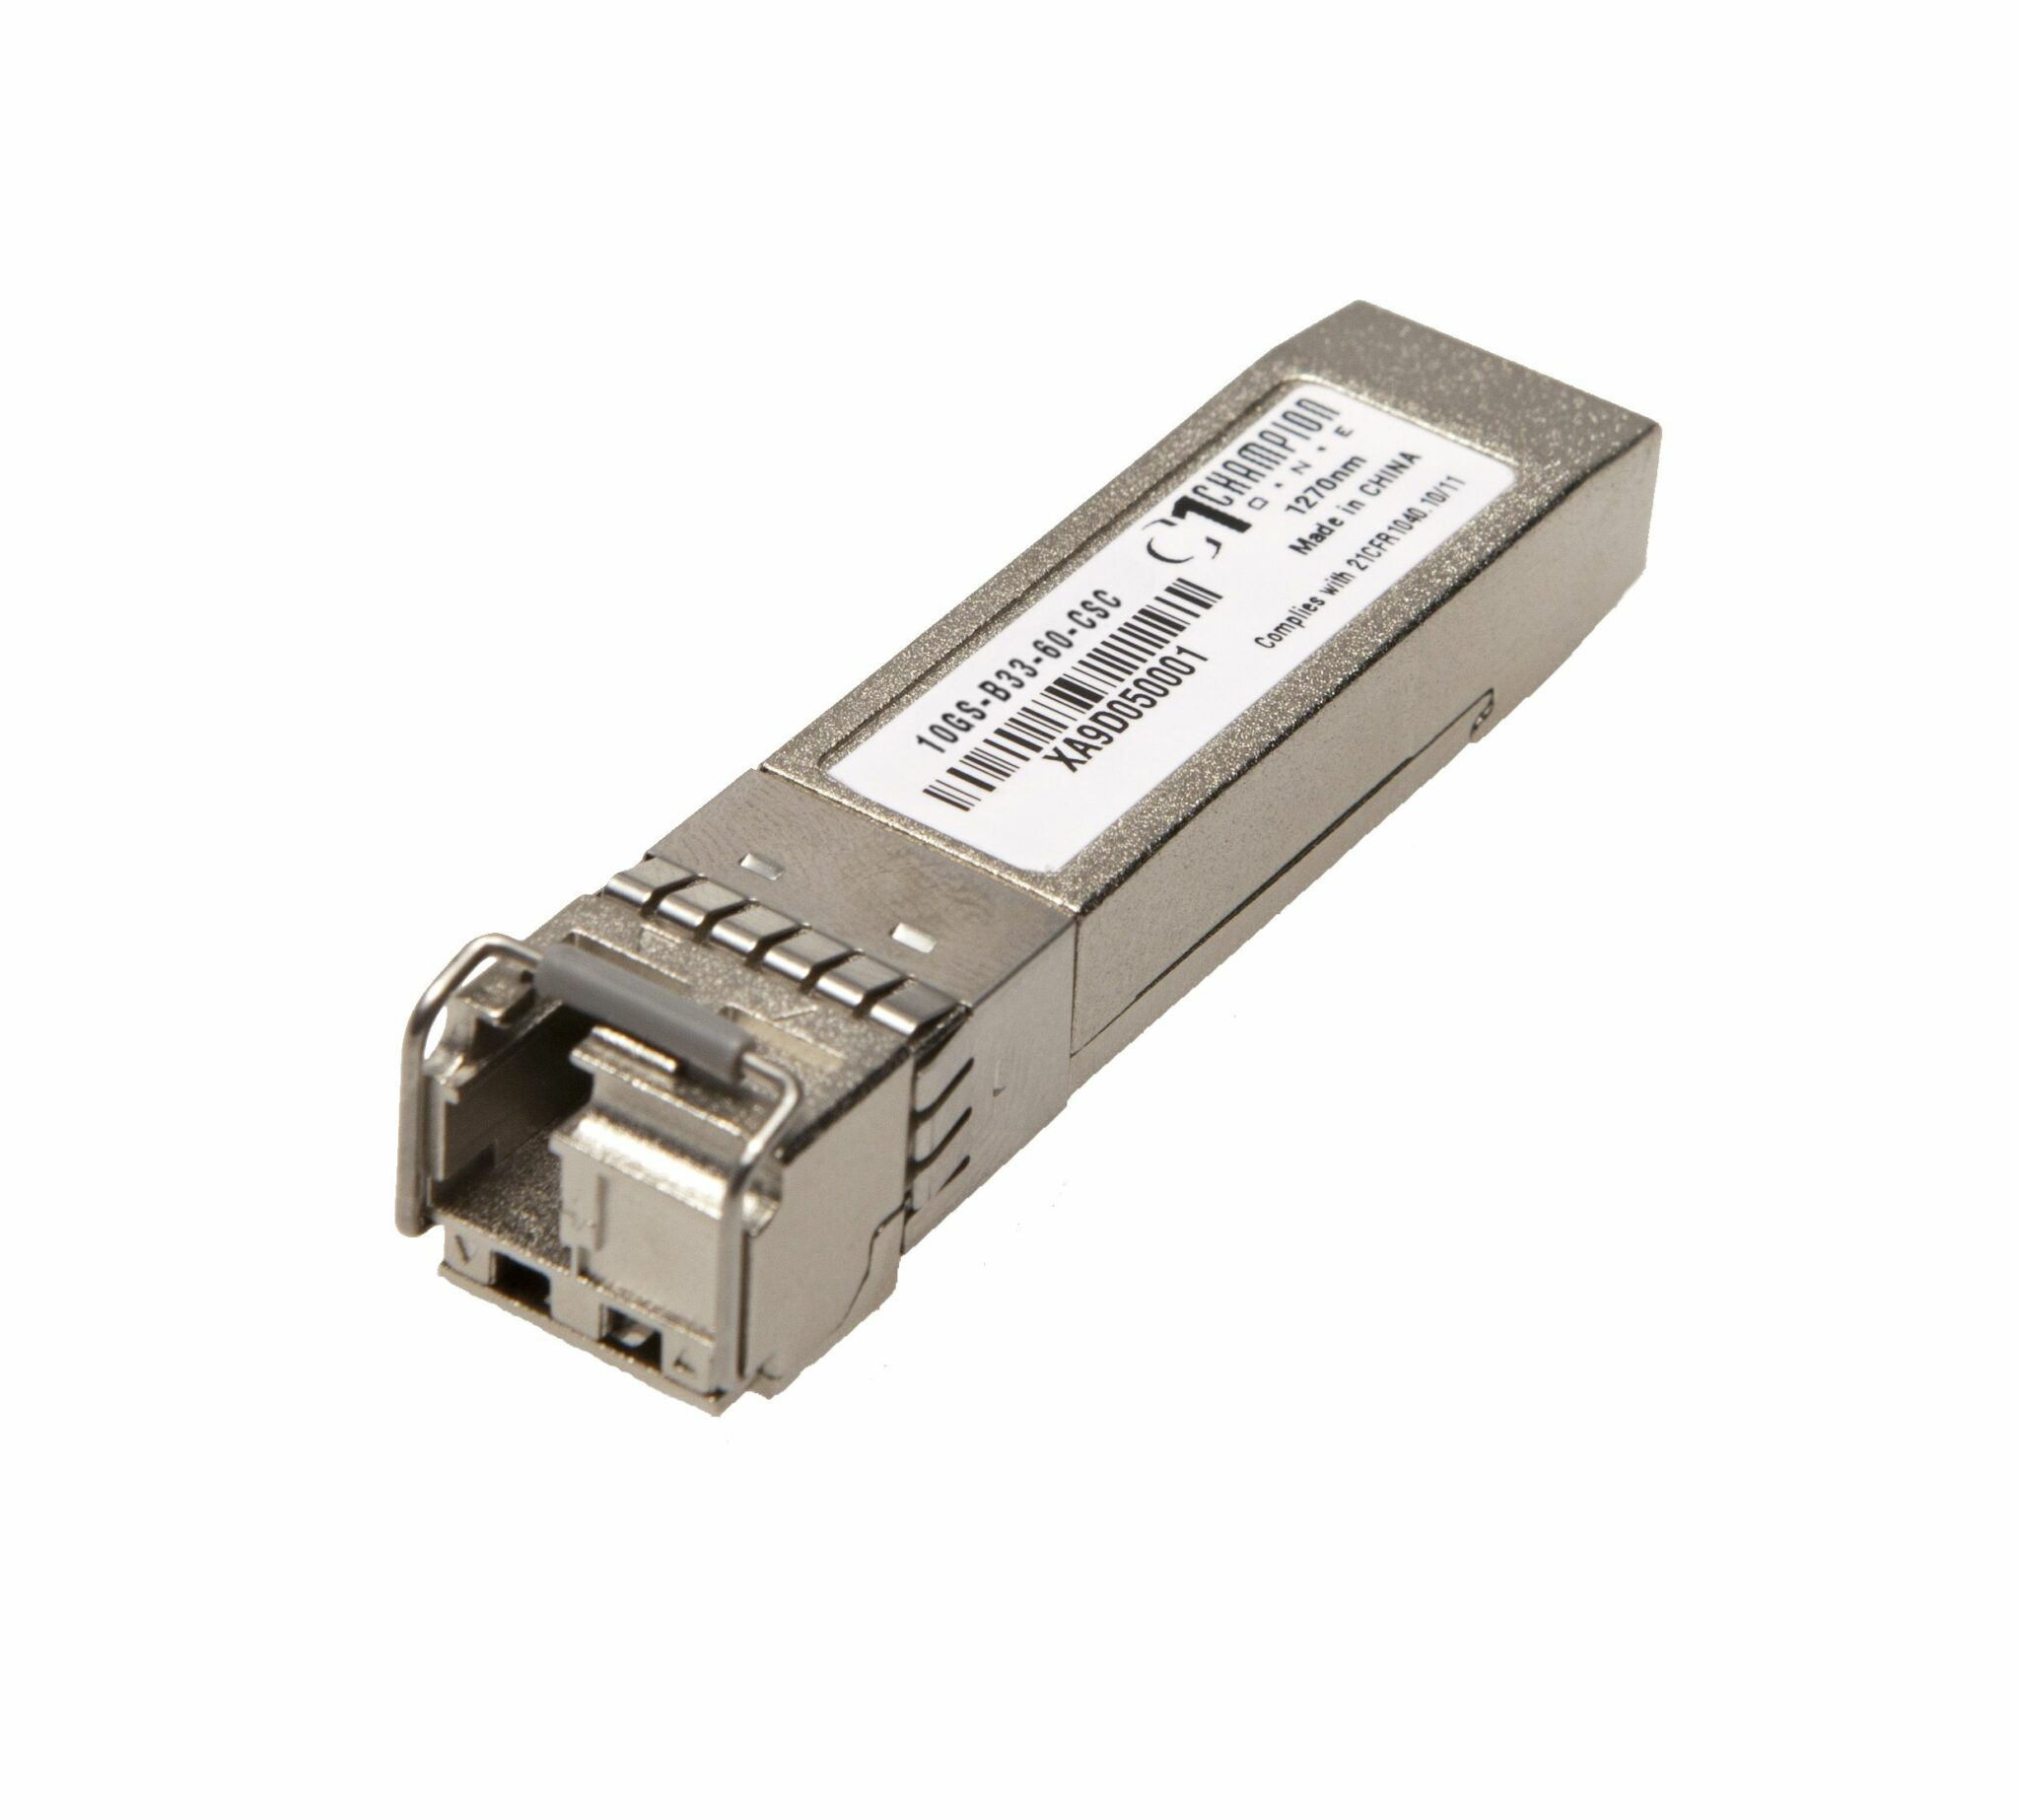 SFP+ SF 10GBase-ER 1330nm 60km Transceiver, Cisco Systems compatible